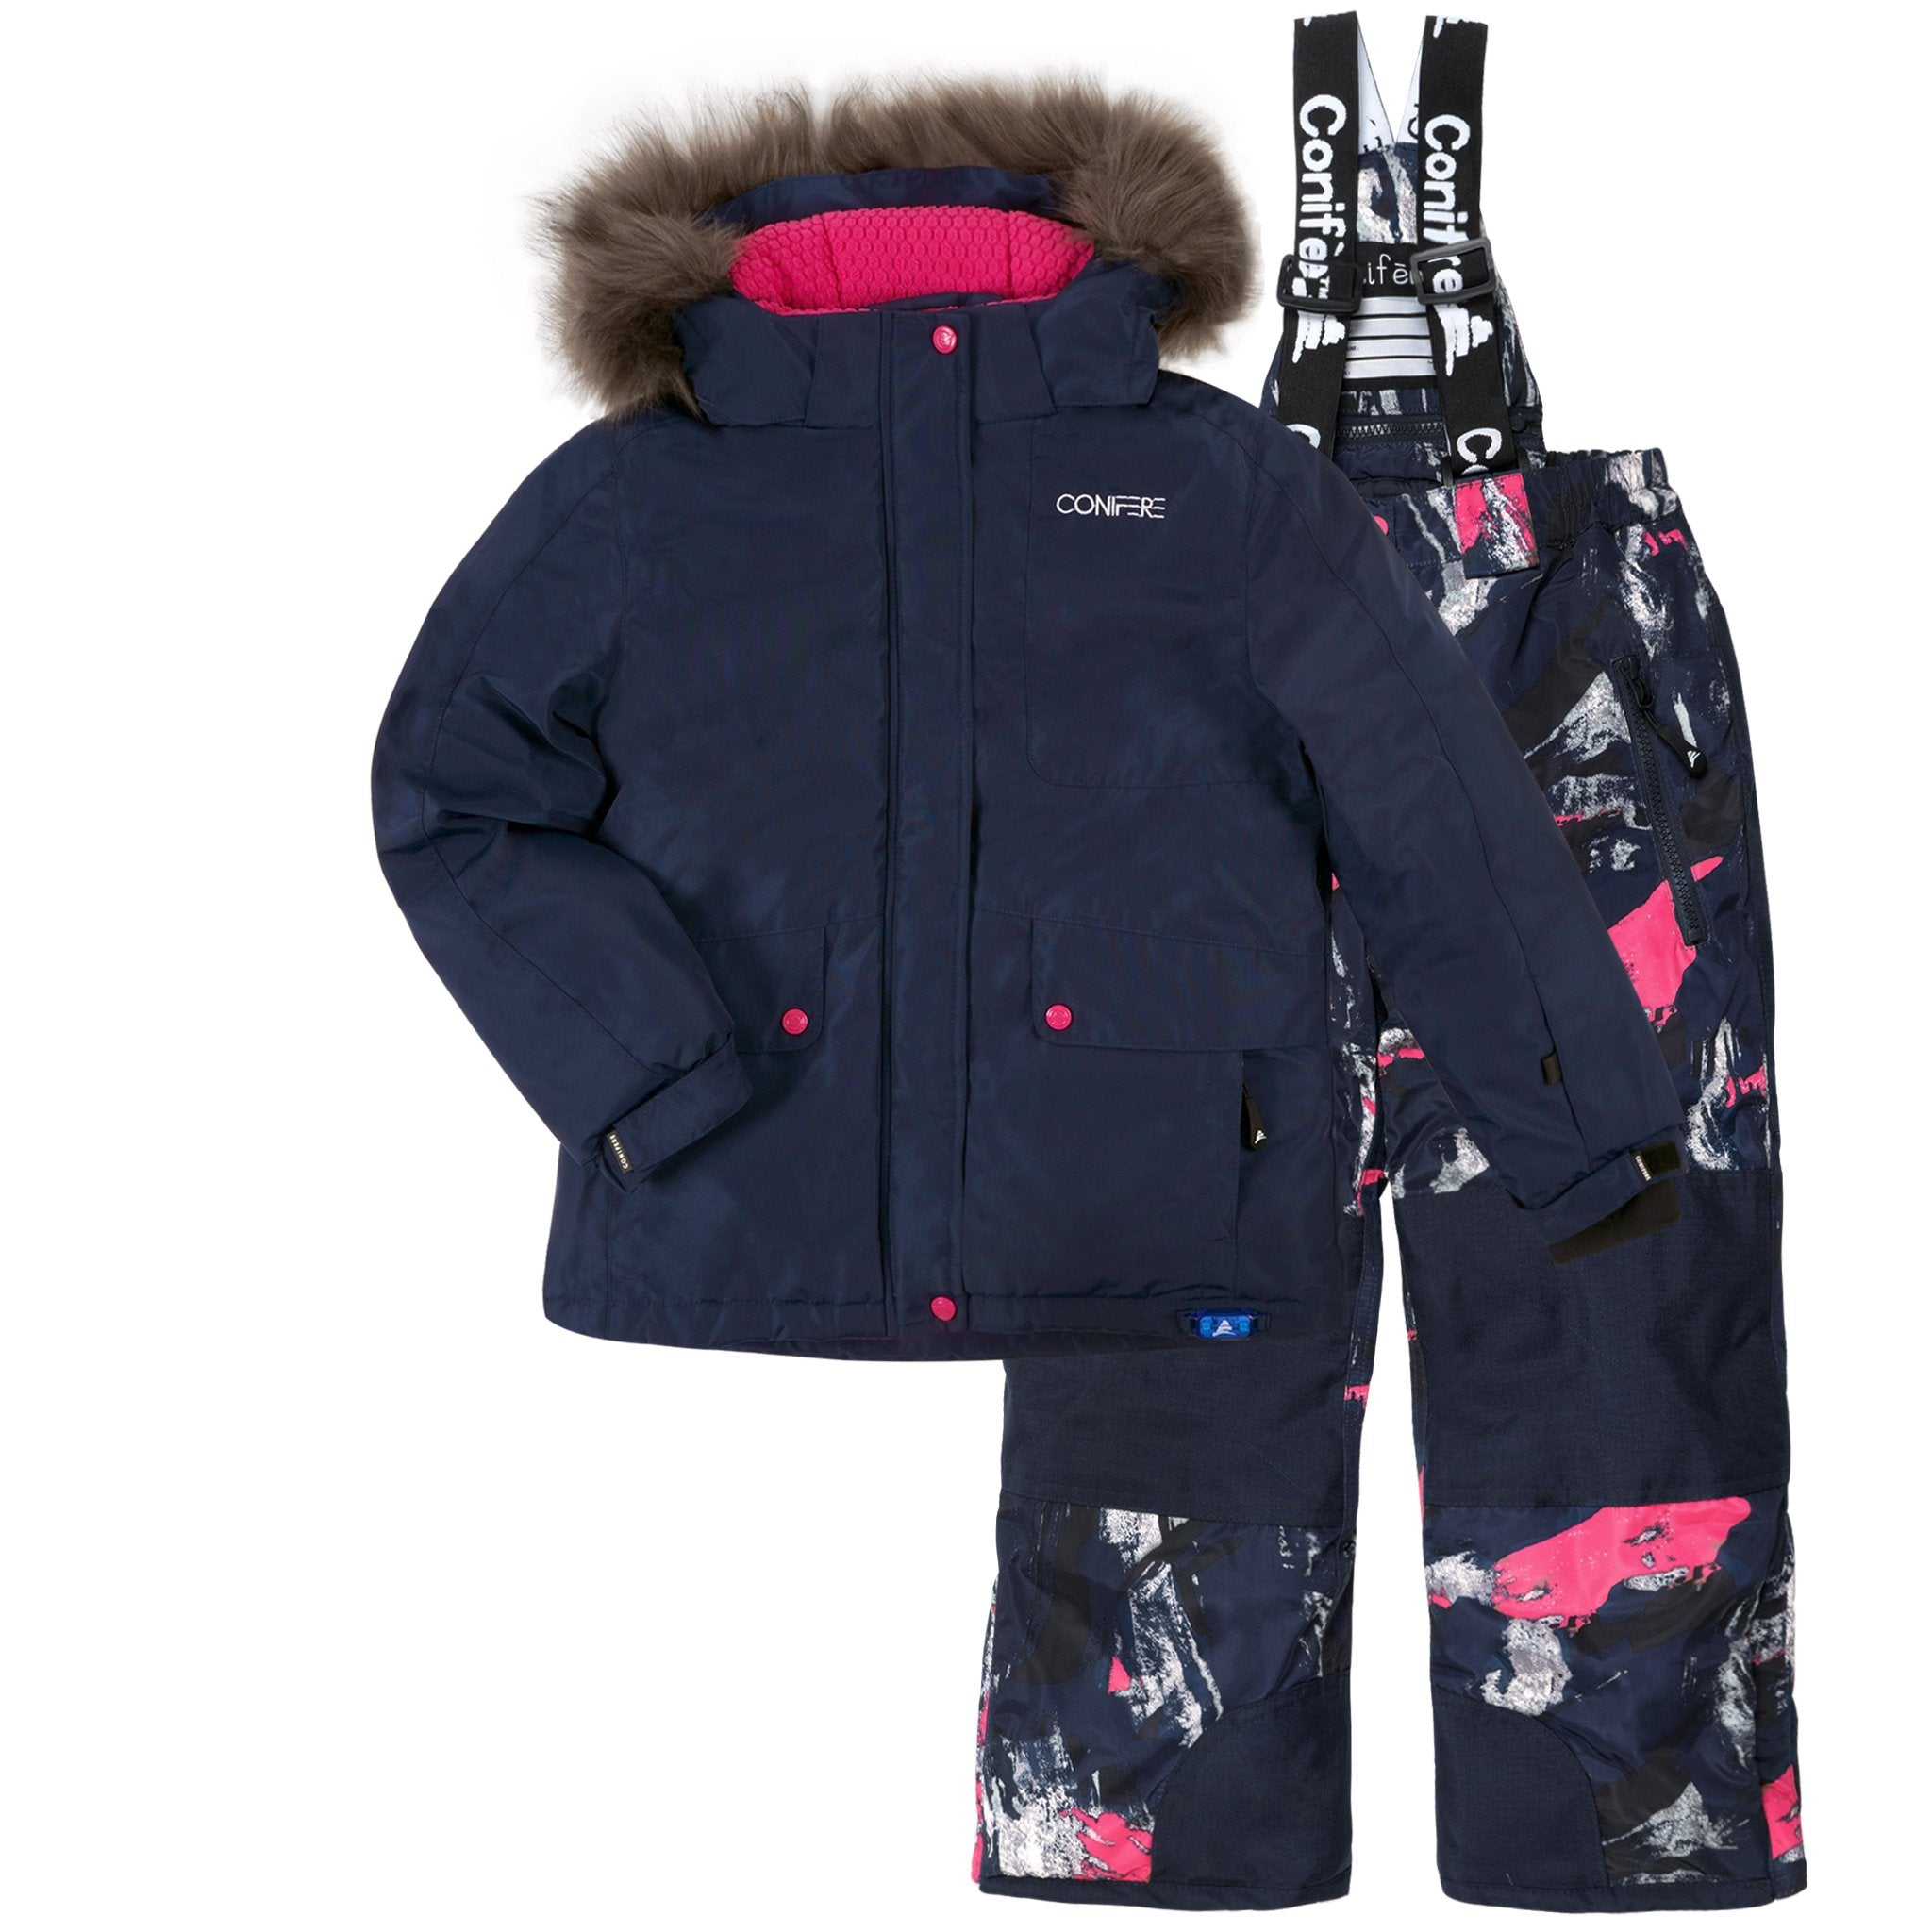 Porcha's Snowsuit